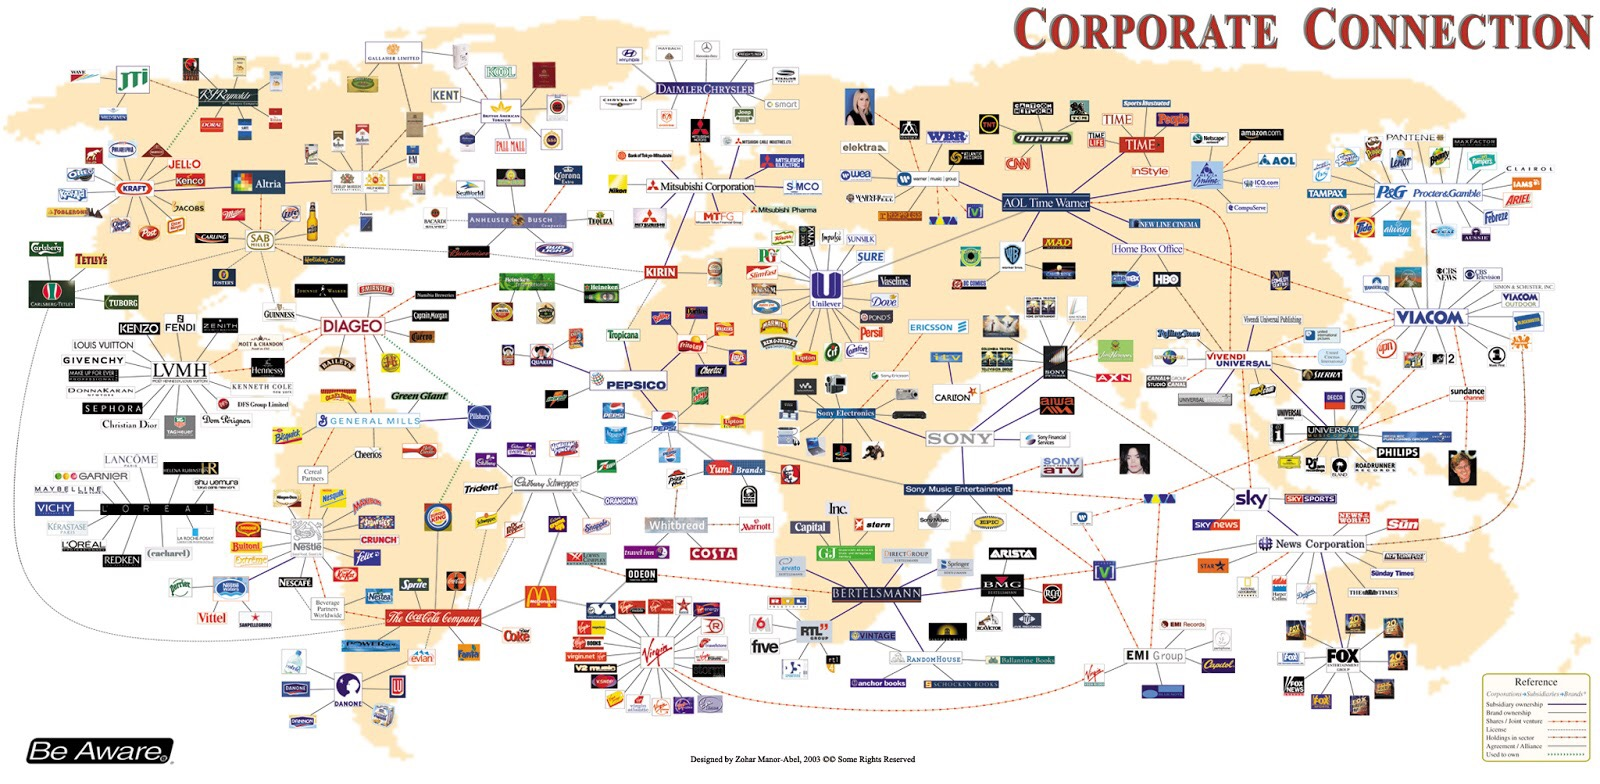 Companies Connections